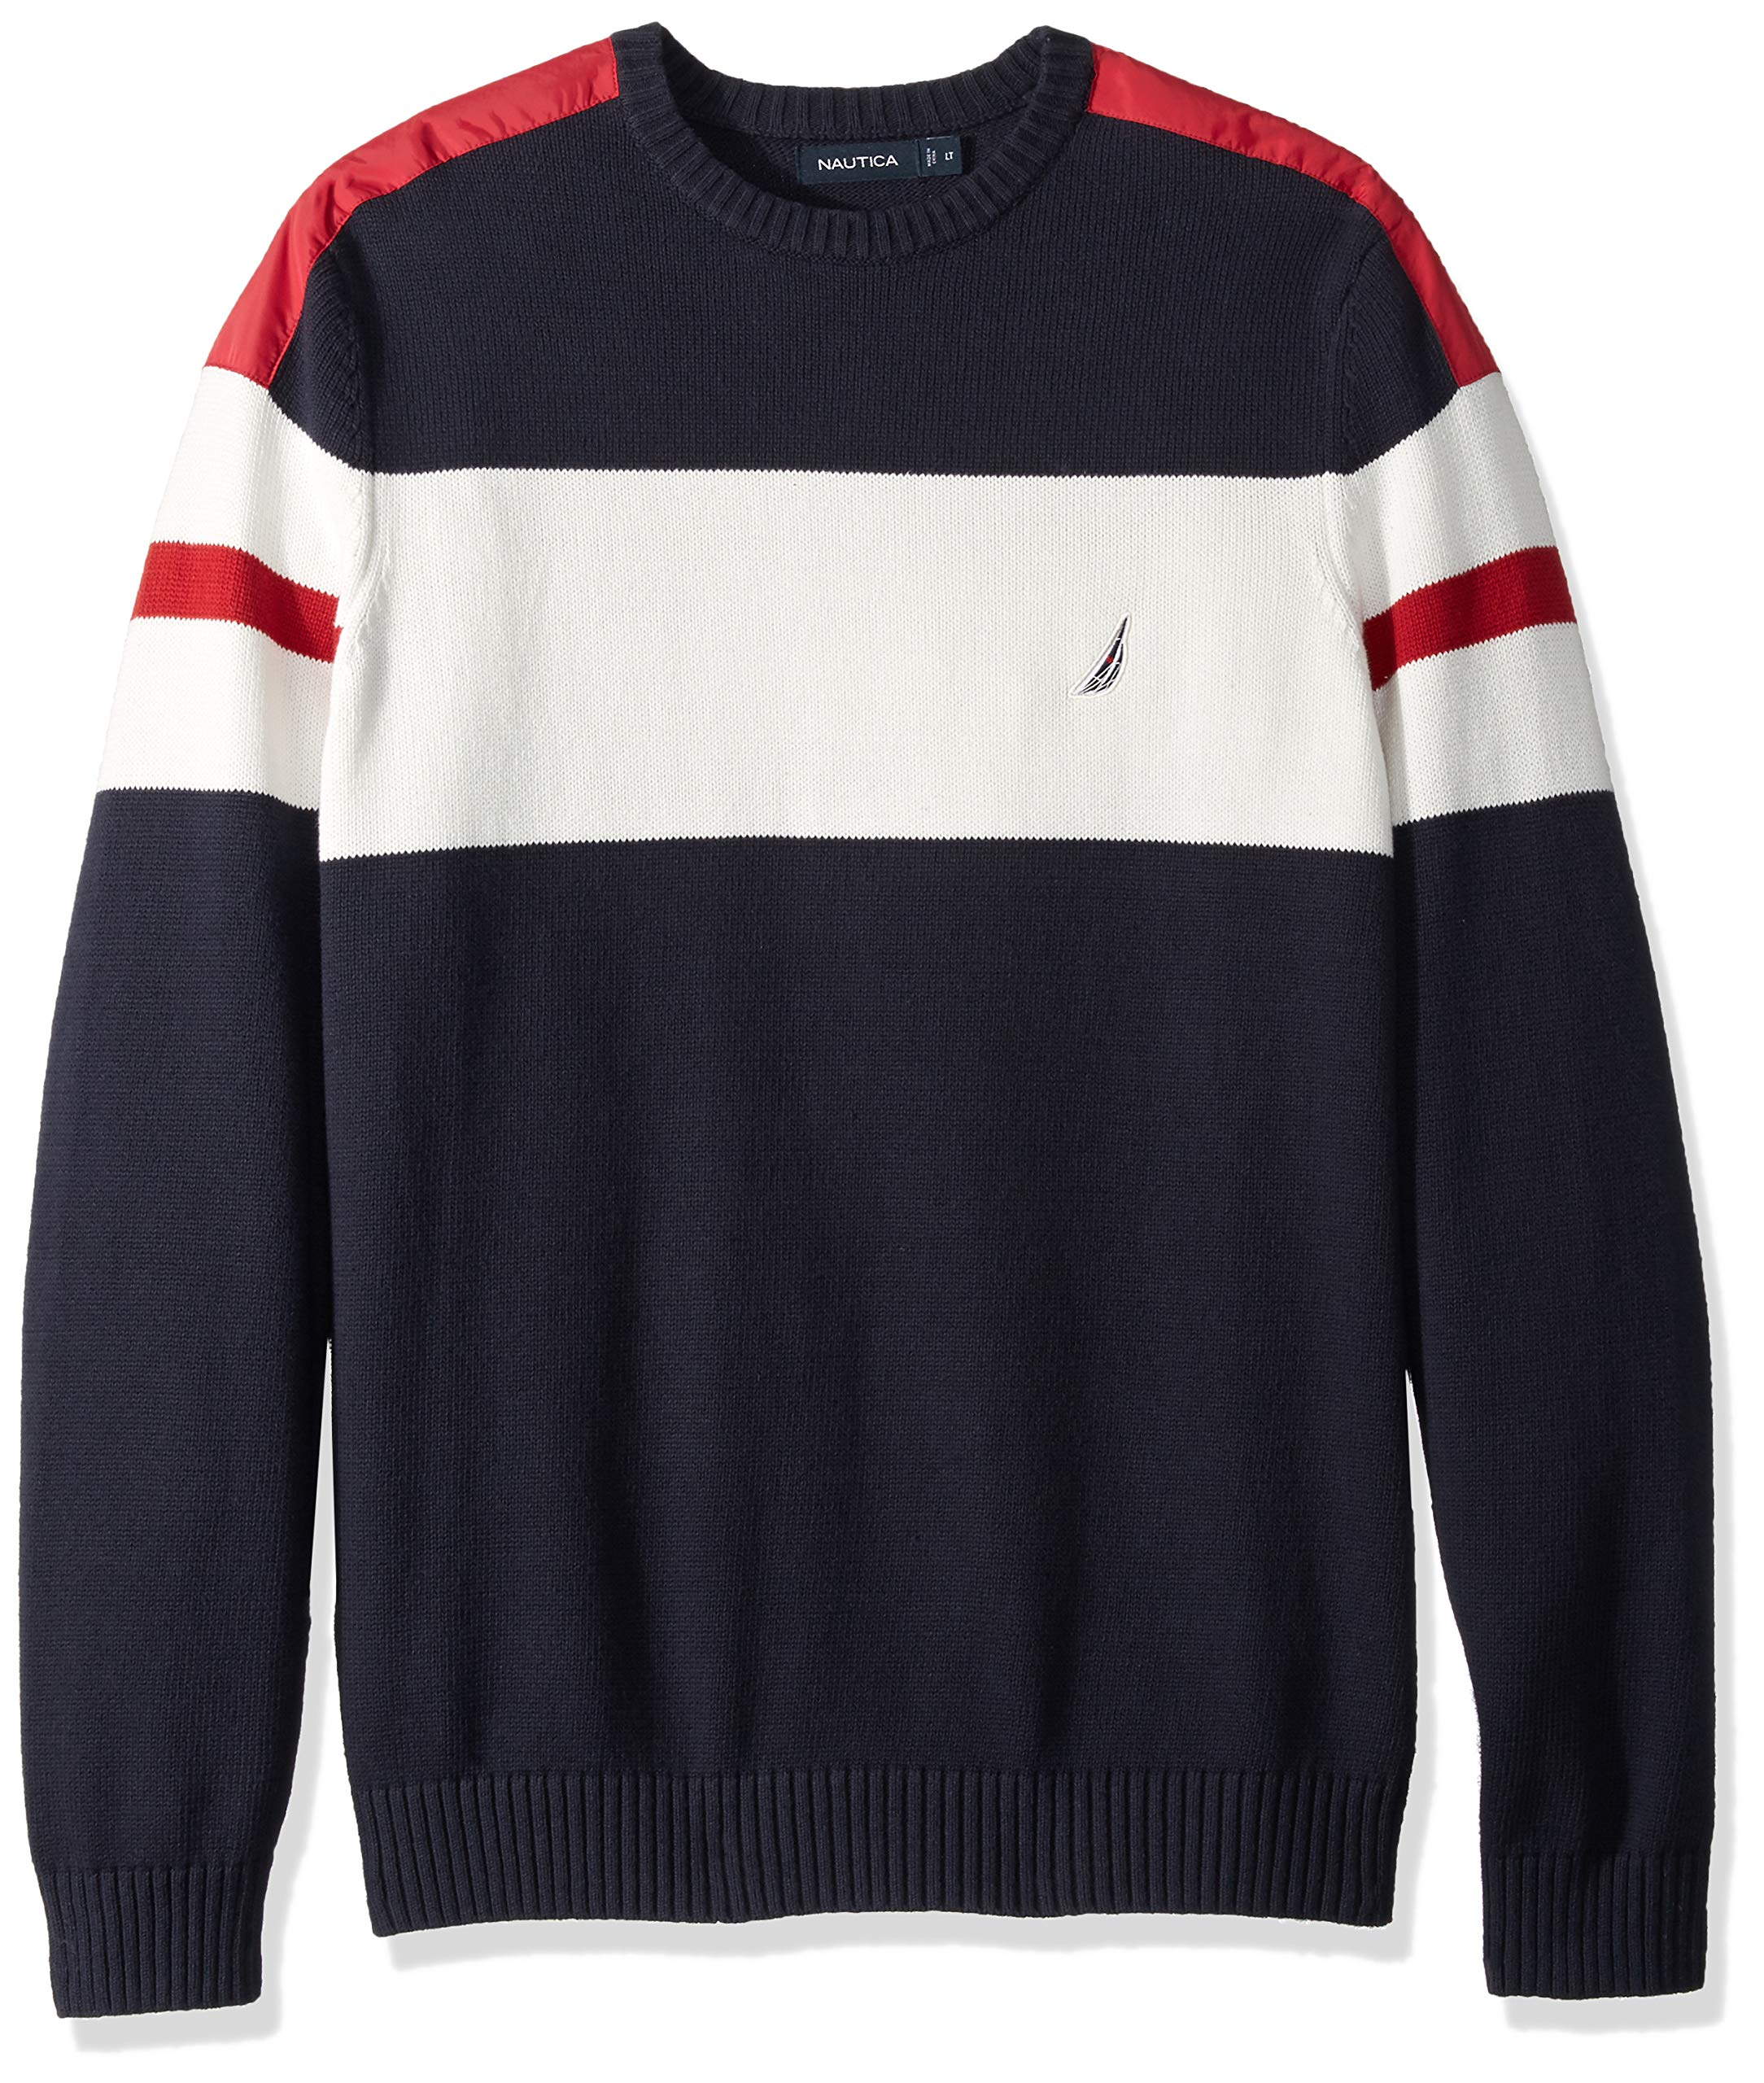 Nautica Men's Big and Tall Challenger Crewneck Stripe Sweater, Navy, LT